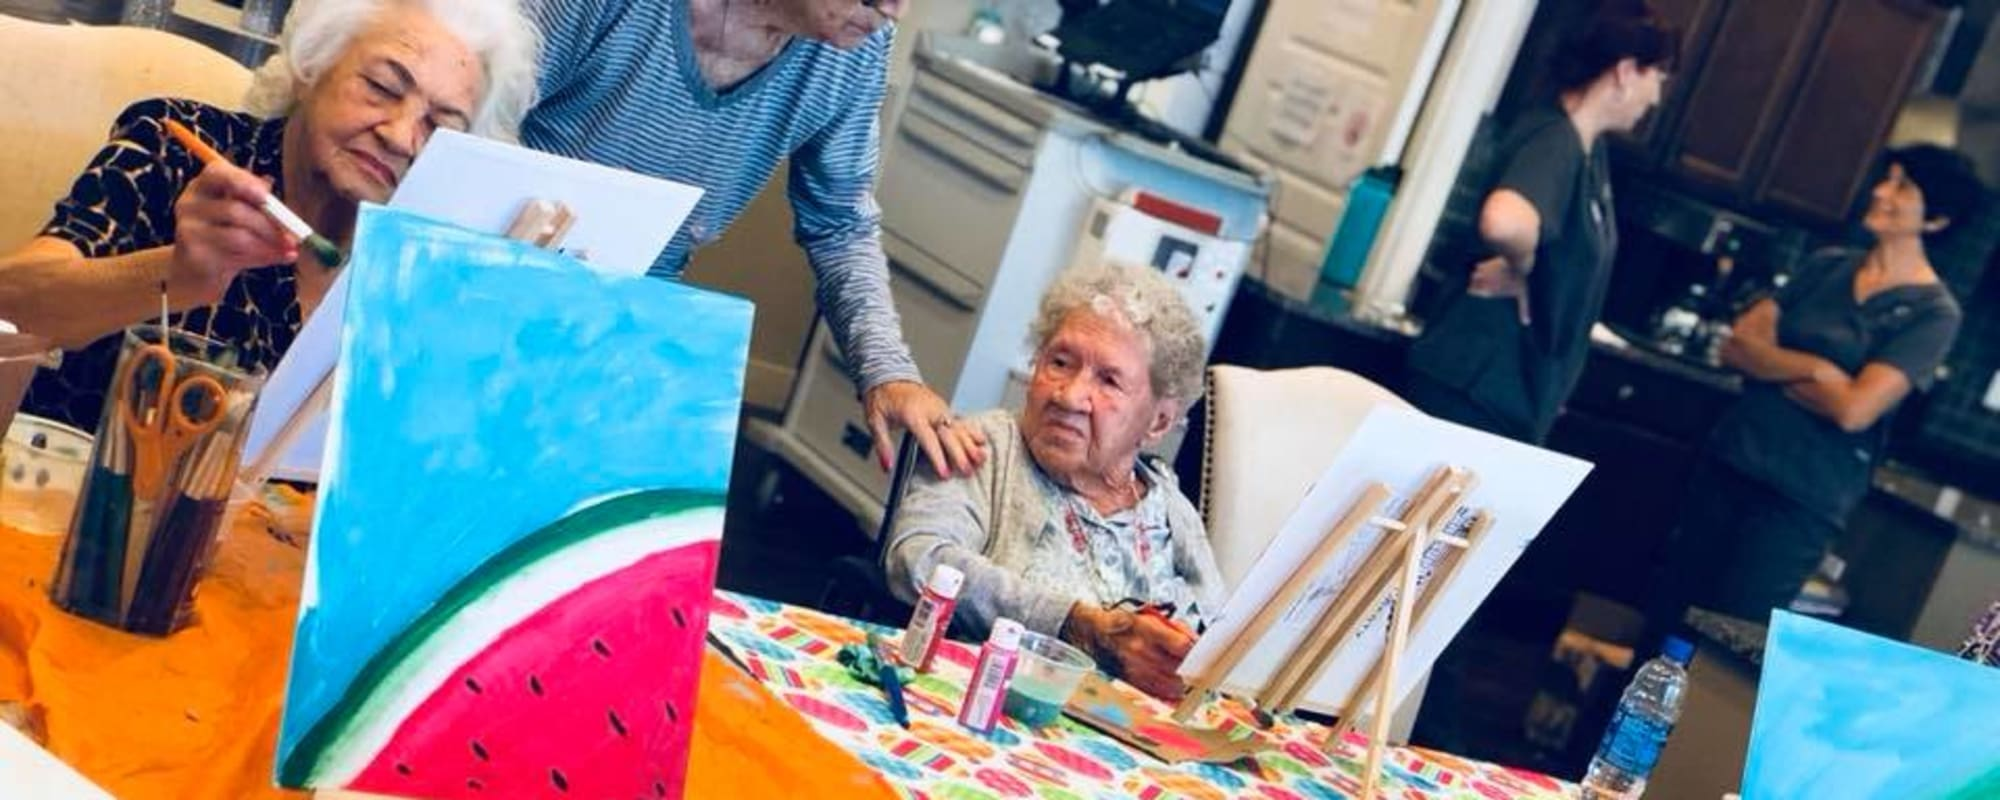 Seniors painting at Hacienda Del Rey in Litchfield Park, Arizona